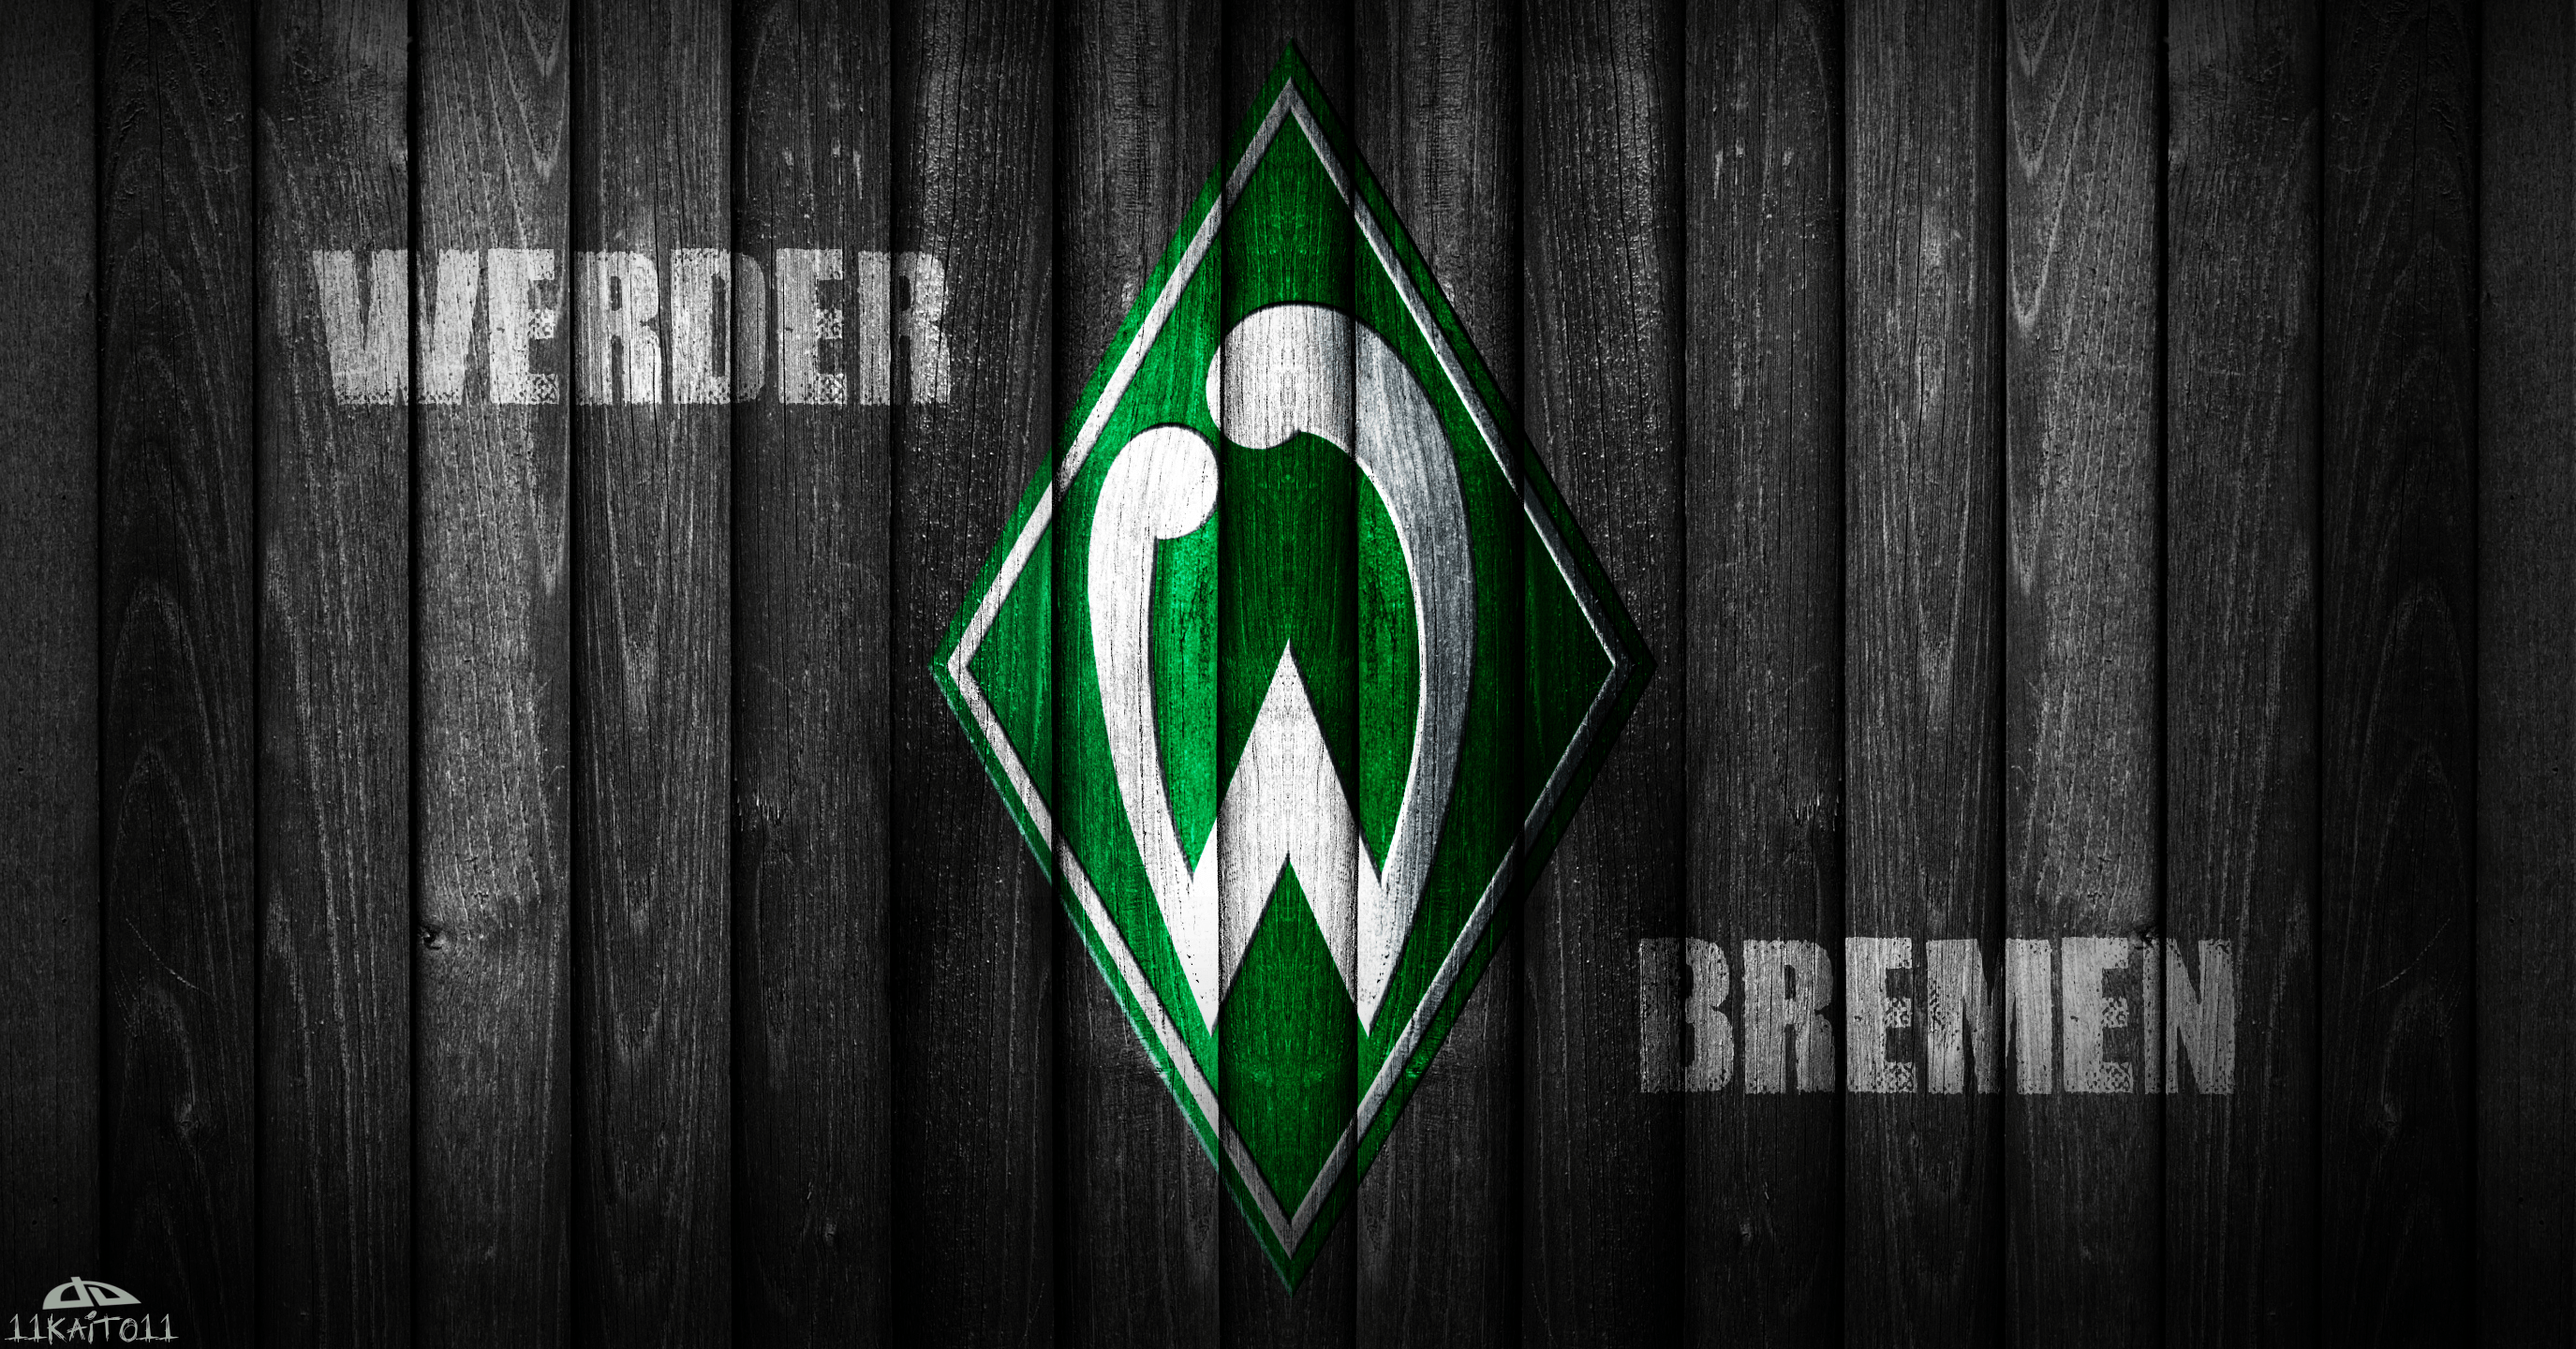 Free 3d Christmas Desktop Wallpaper Werder Bremen Wallpaper Hd Images And Pictures Picamon